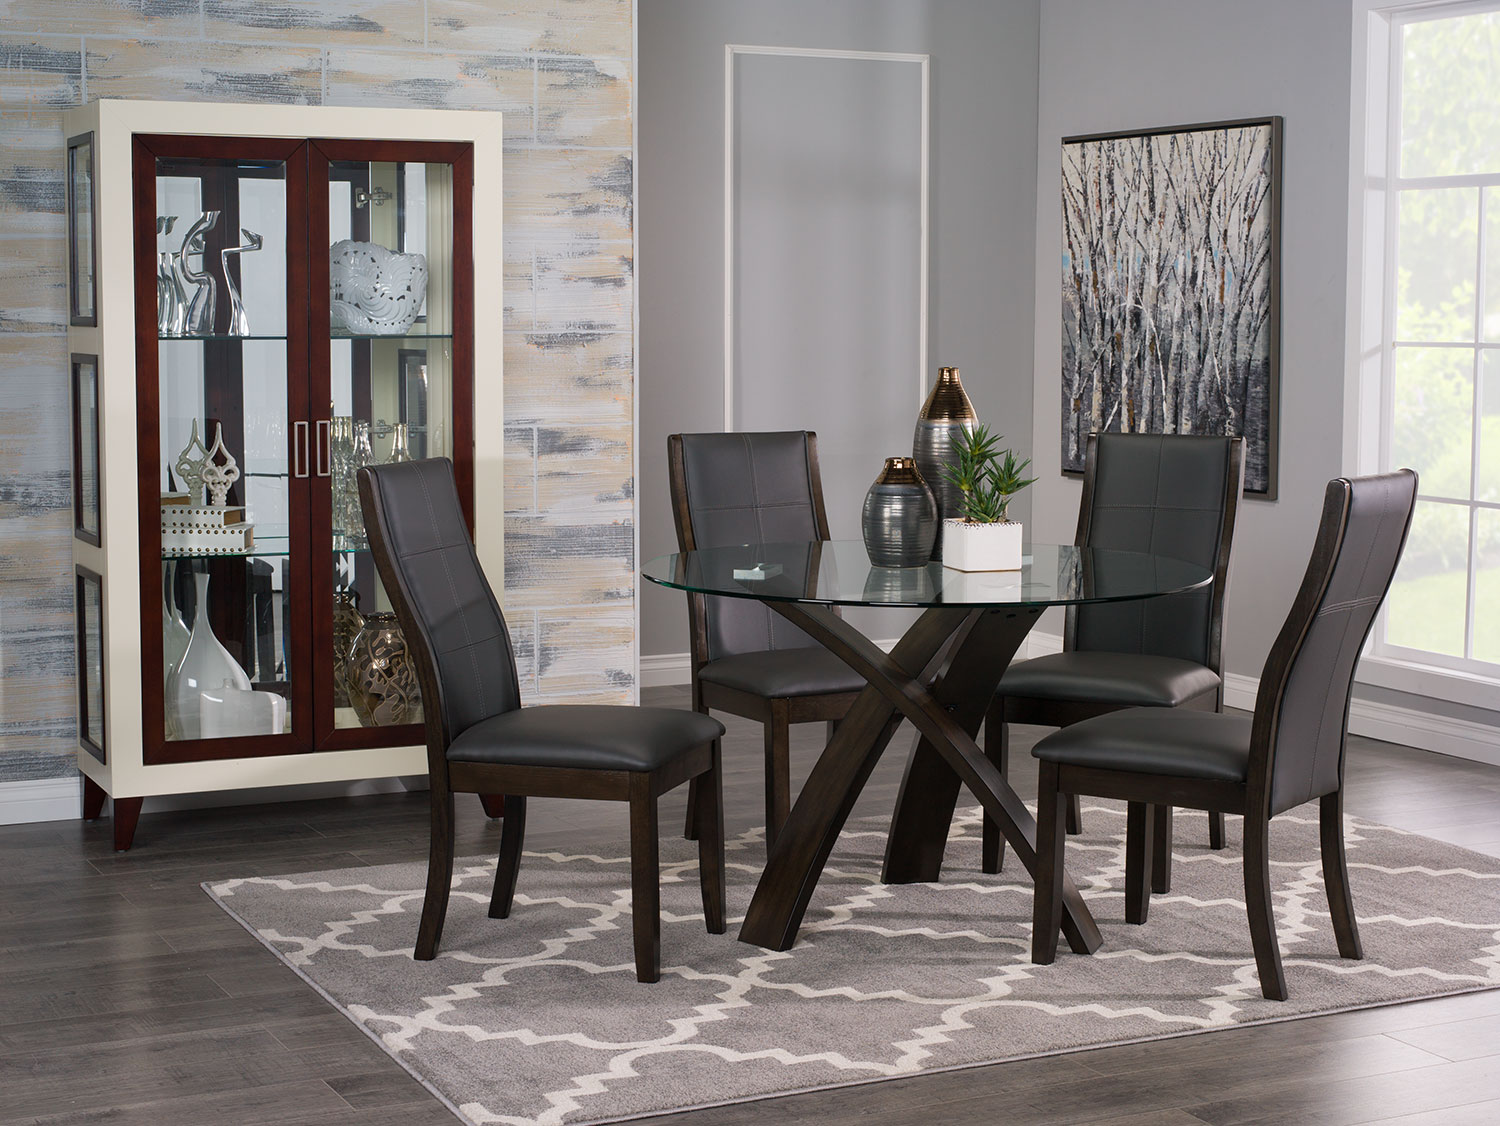 Dining Room Furniture - Skye 5-Piece Dining Package with Tyler Dining Chairs